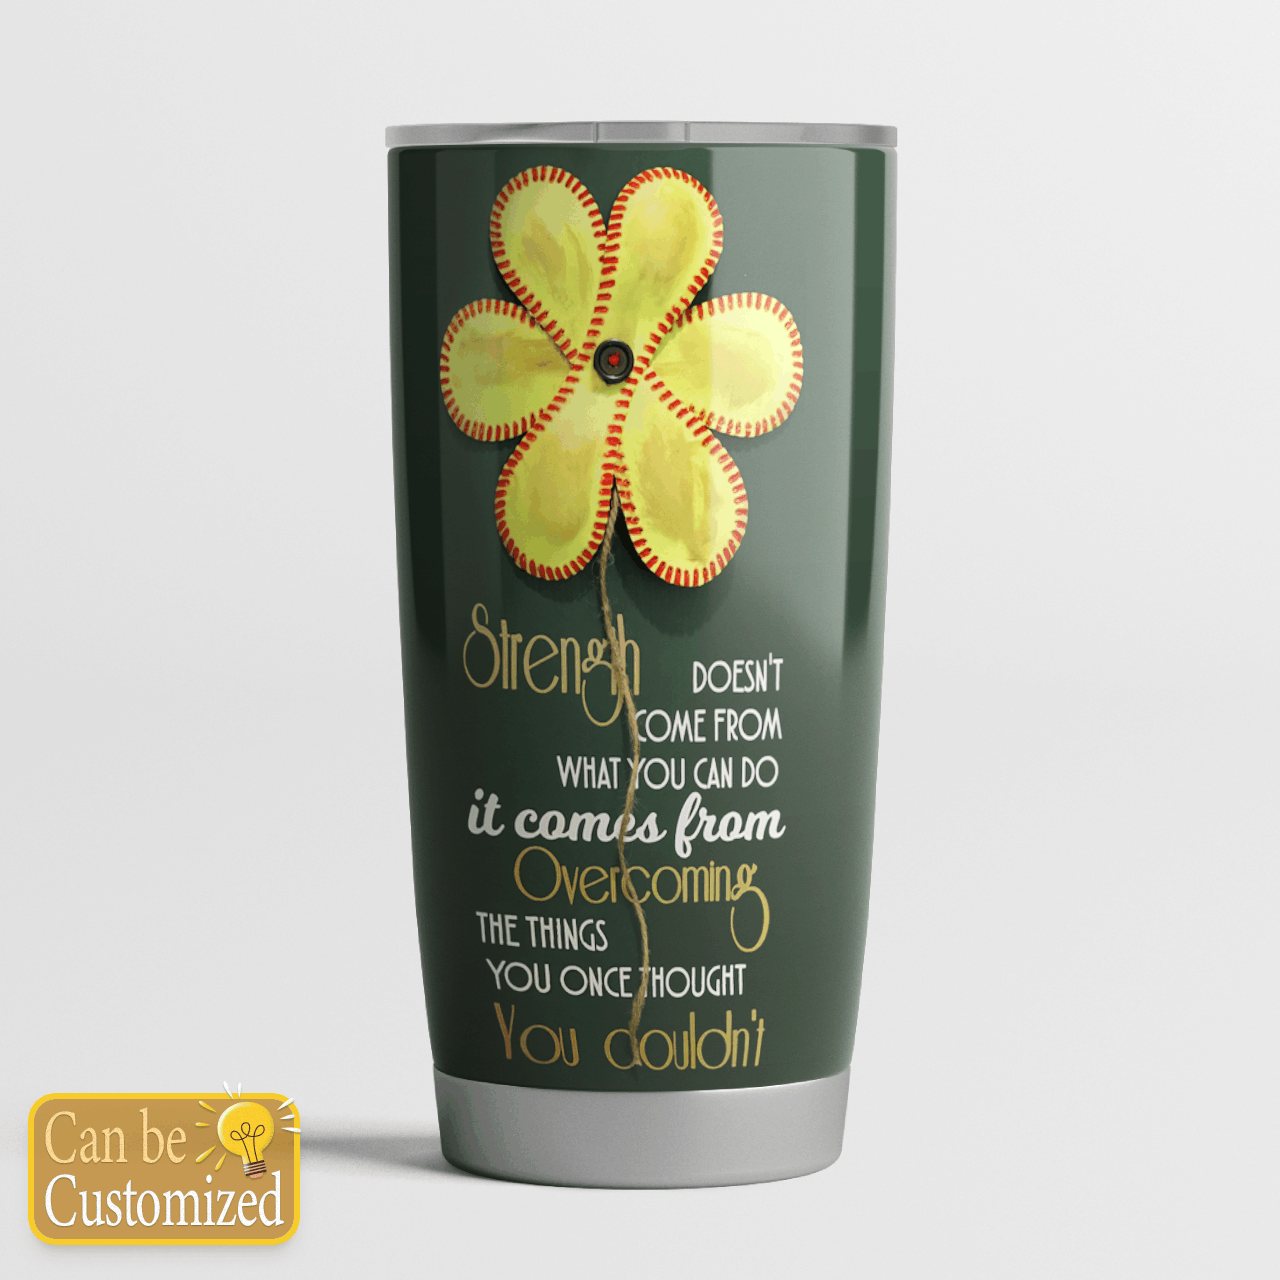 Personalized Strength comes from overcoming baseball flower tumbler